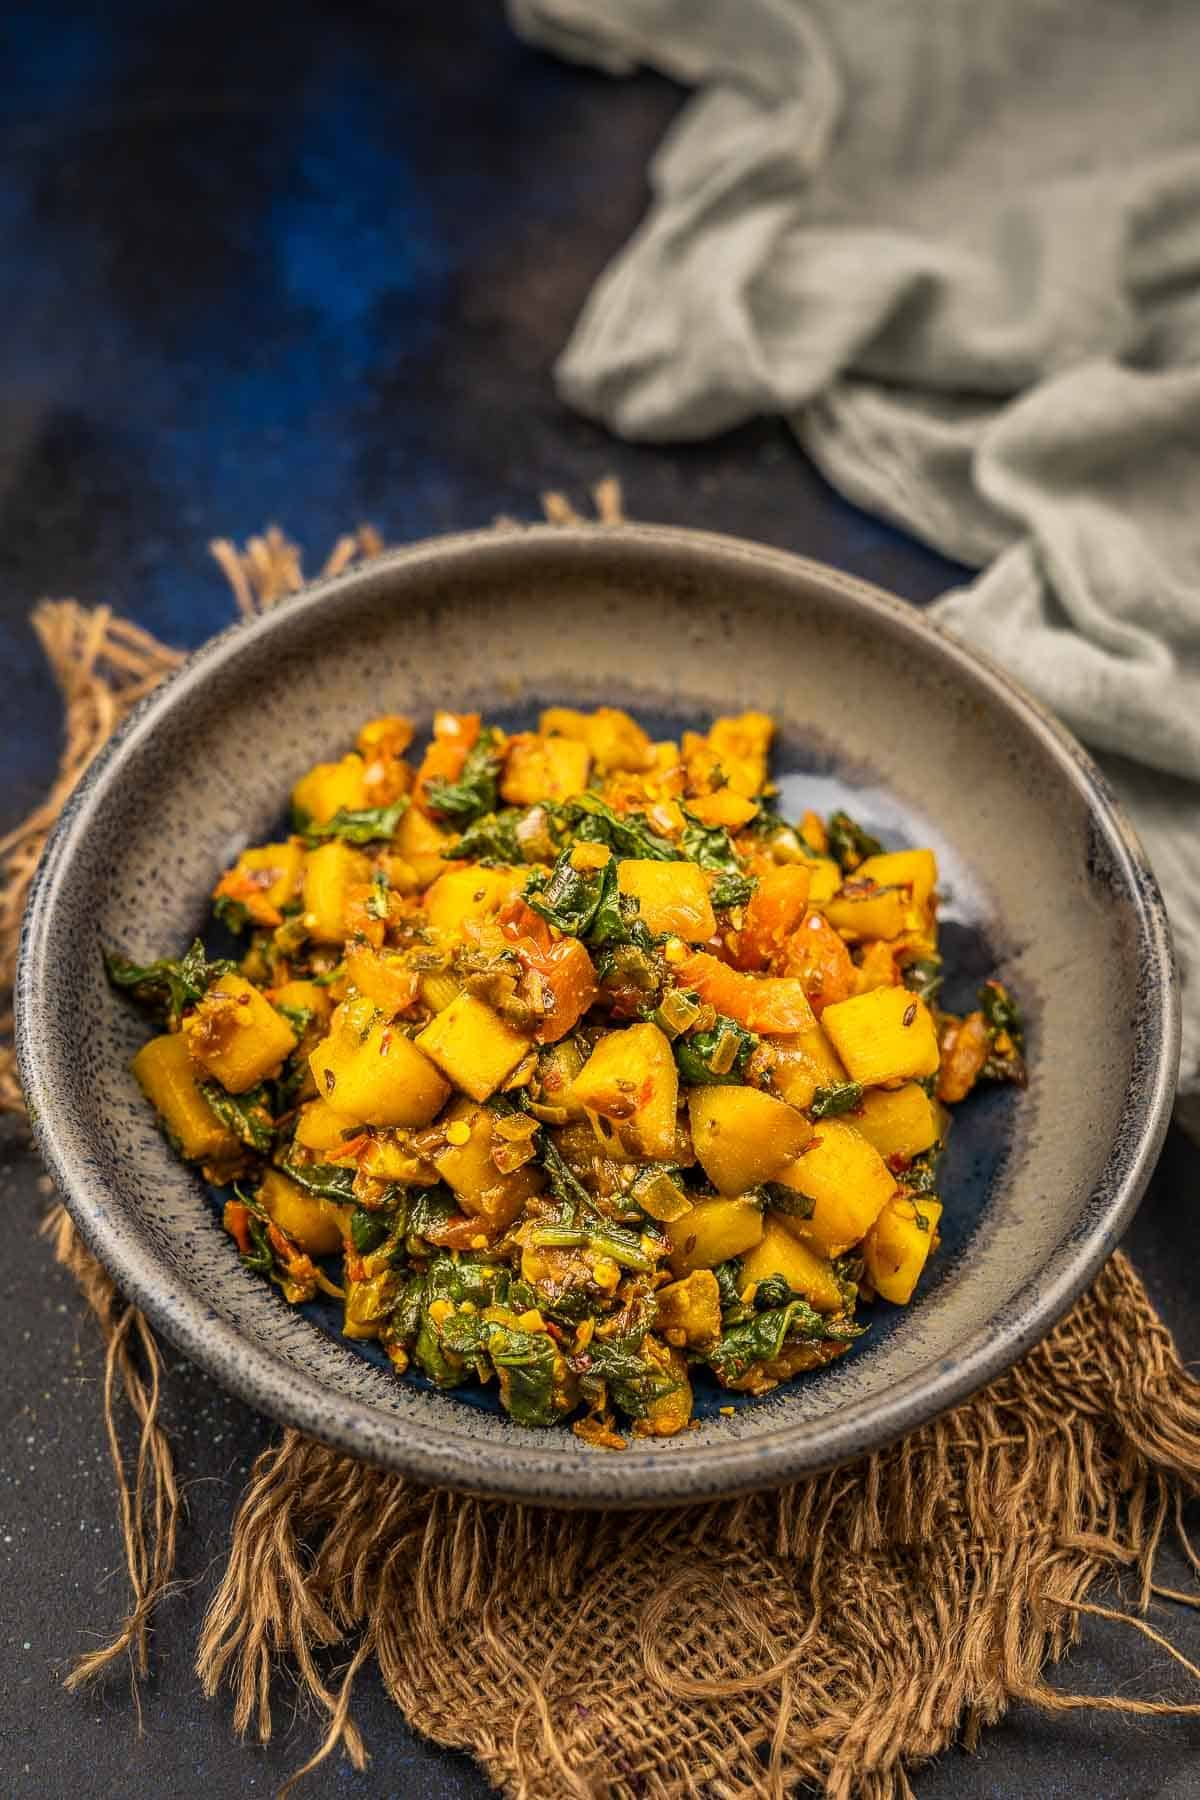 Aloo palak served in a bowl.